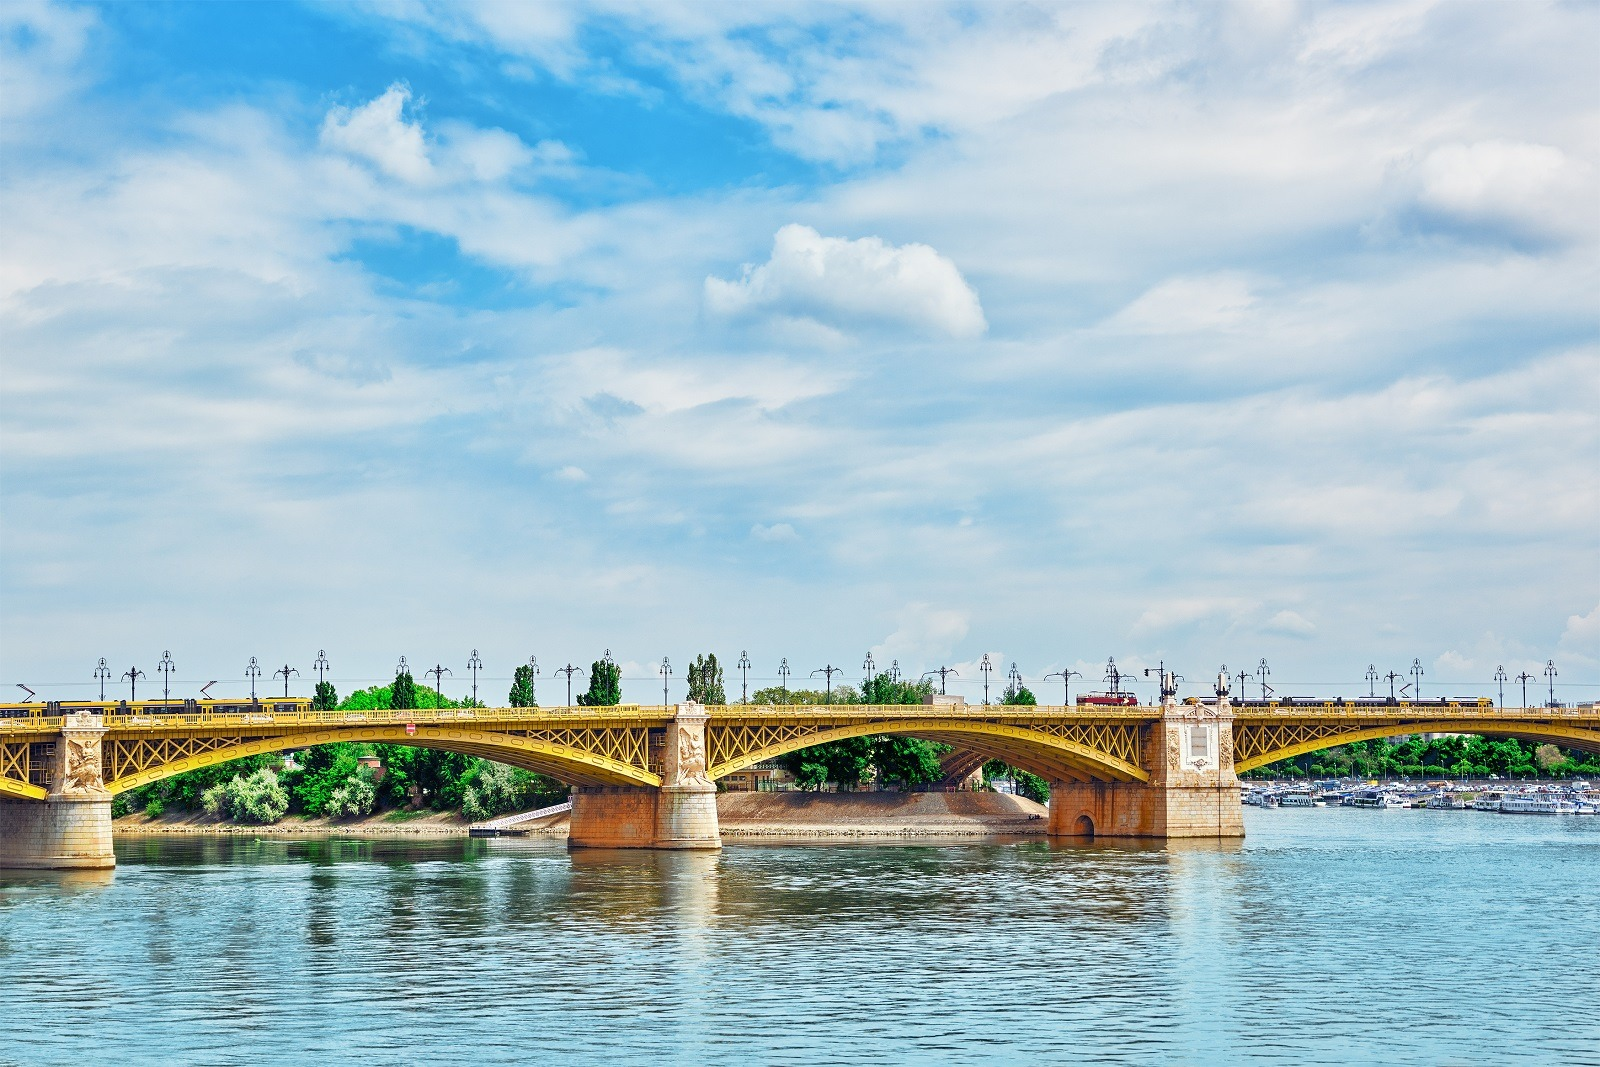 Margaret Bridge (sometimes Margit Bridge), Hungary, Connecting B